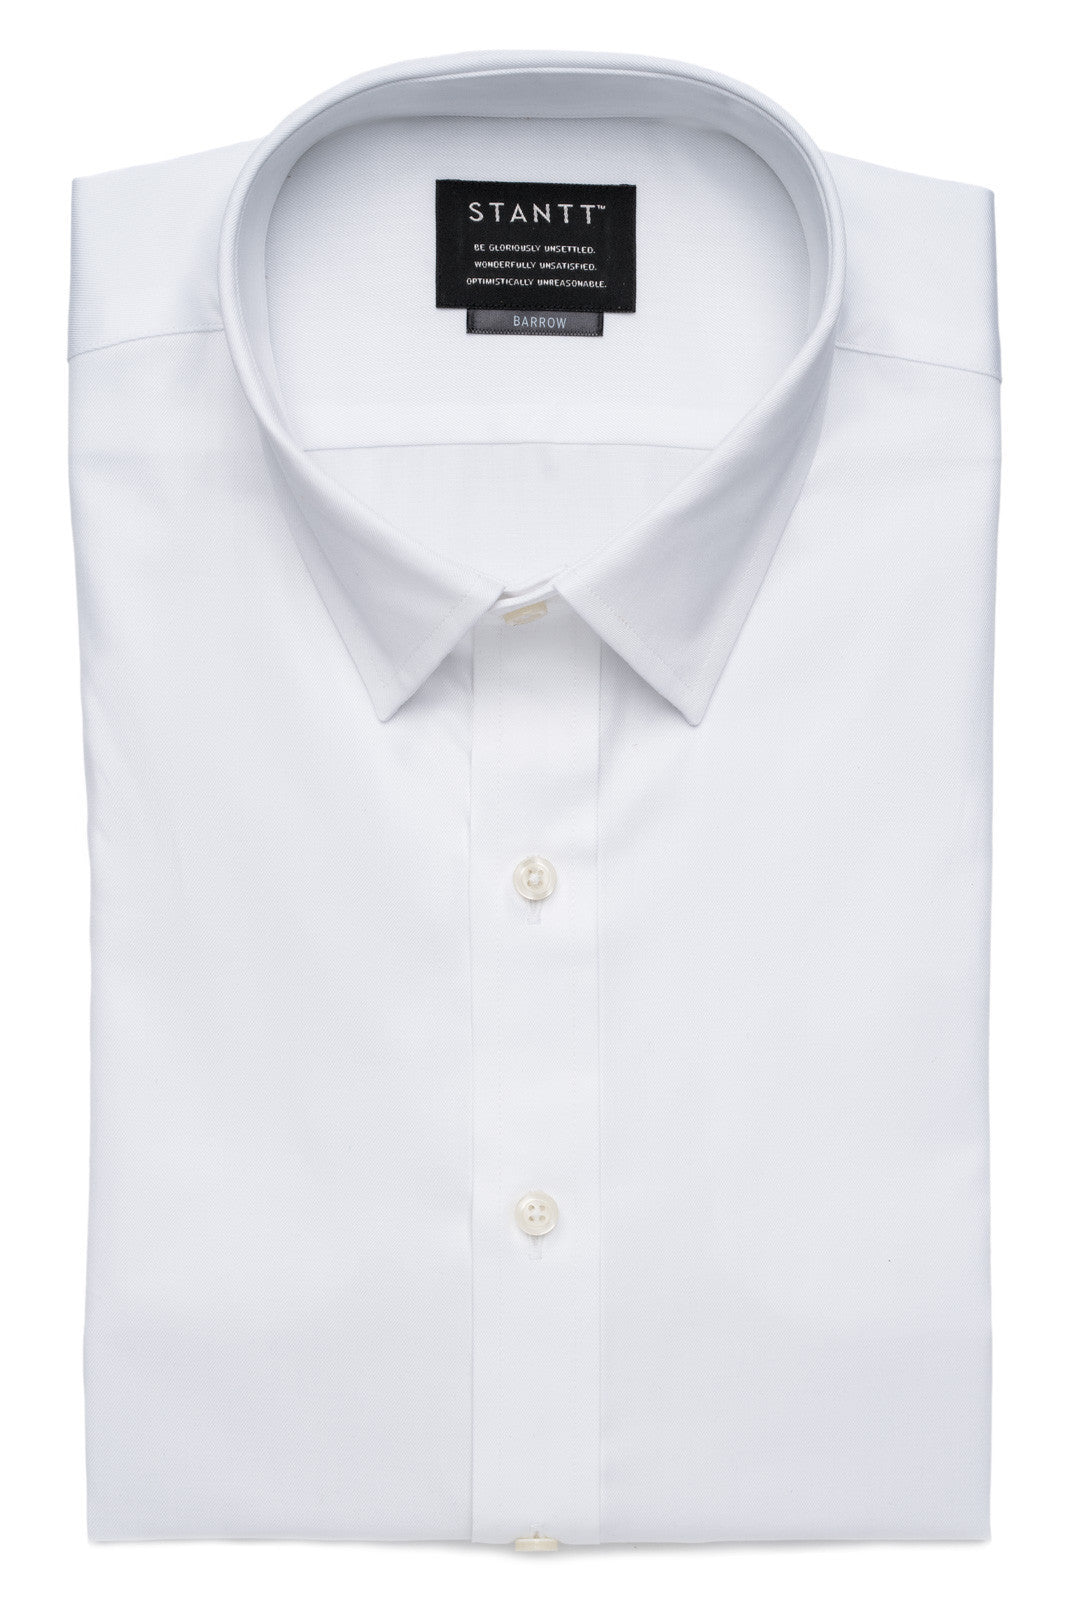 Fine White Twill: Semi-Spread Collar, Barrel Cuff